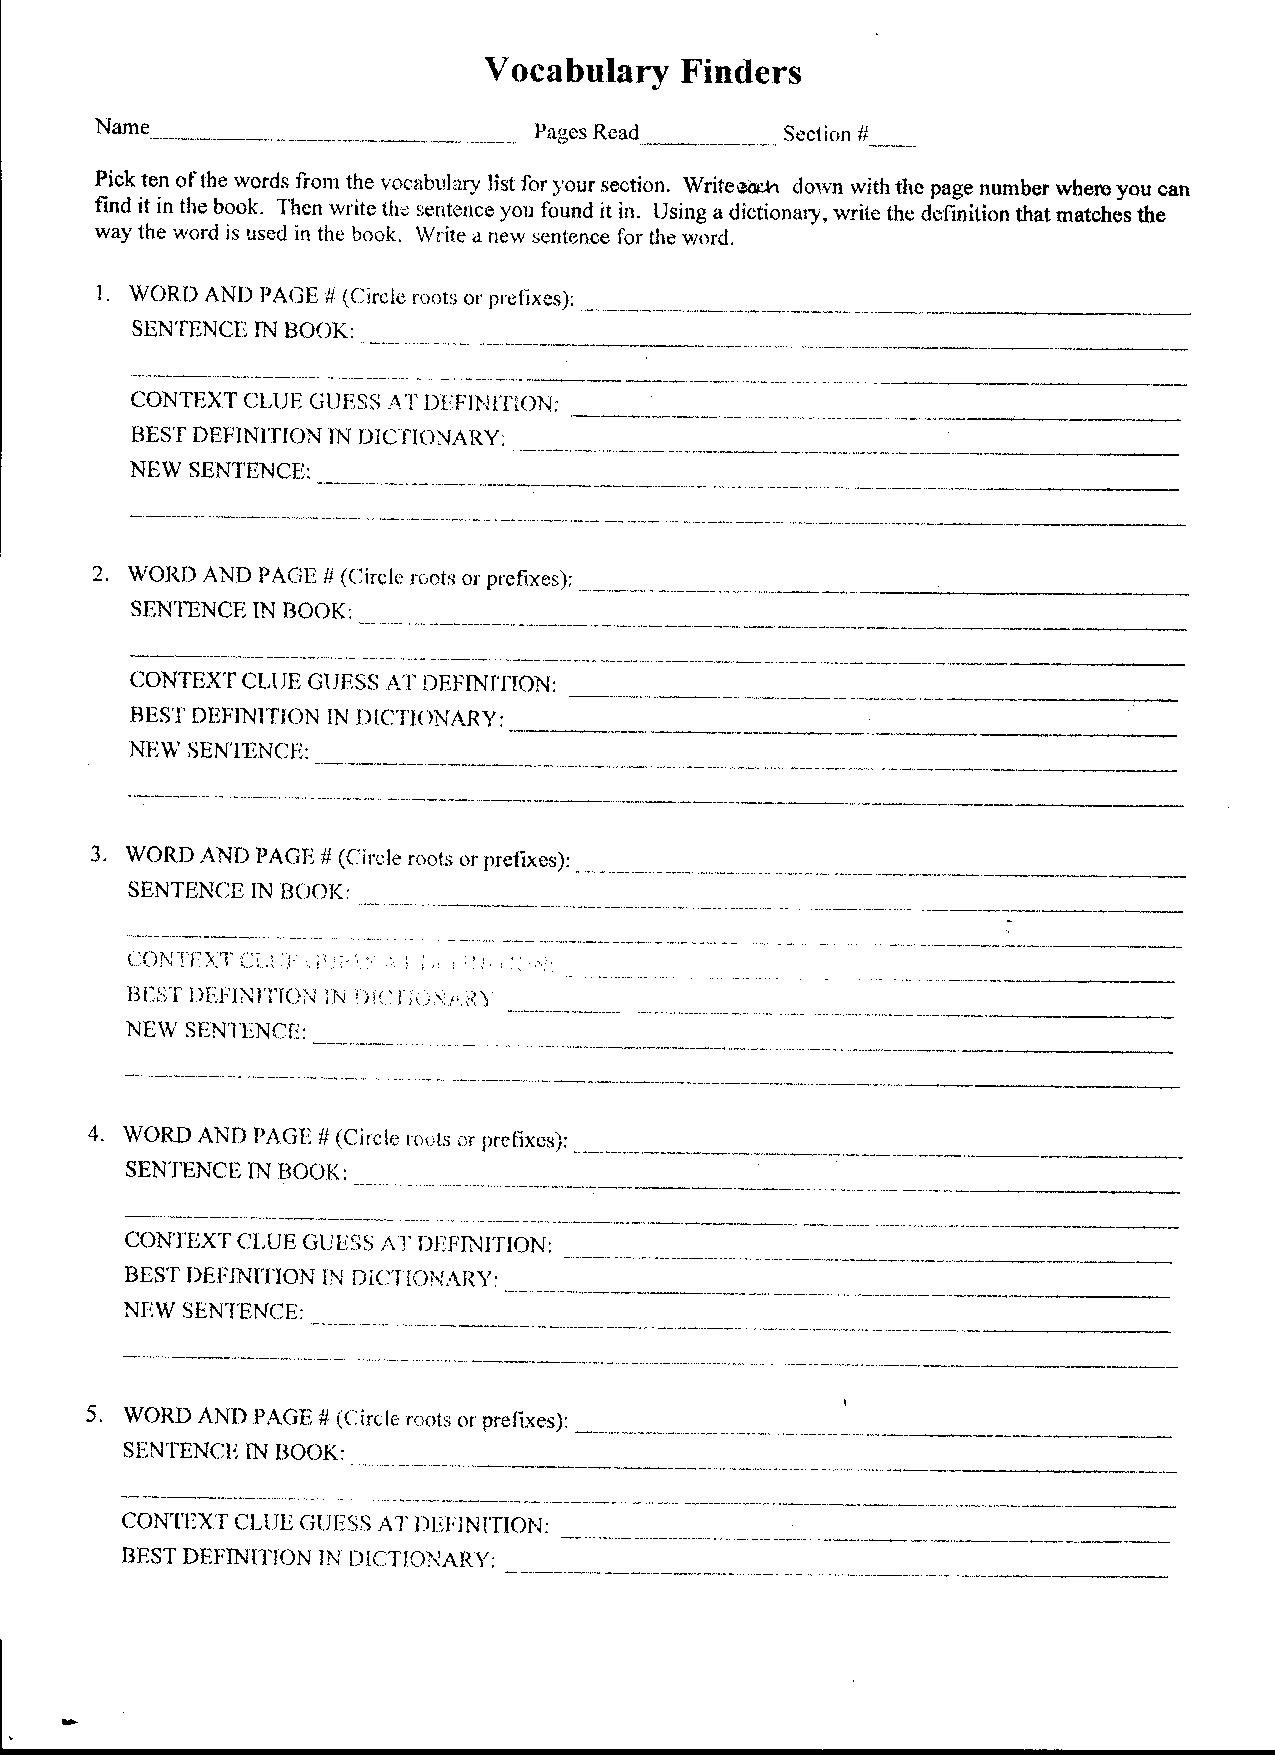 Giver Vocabulary Worksheet Easy